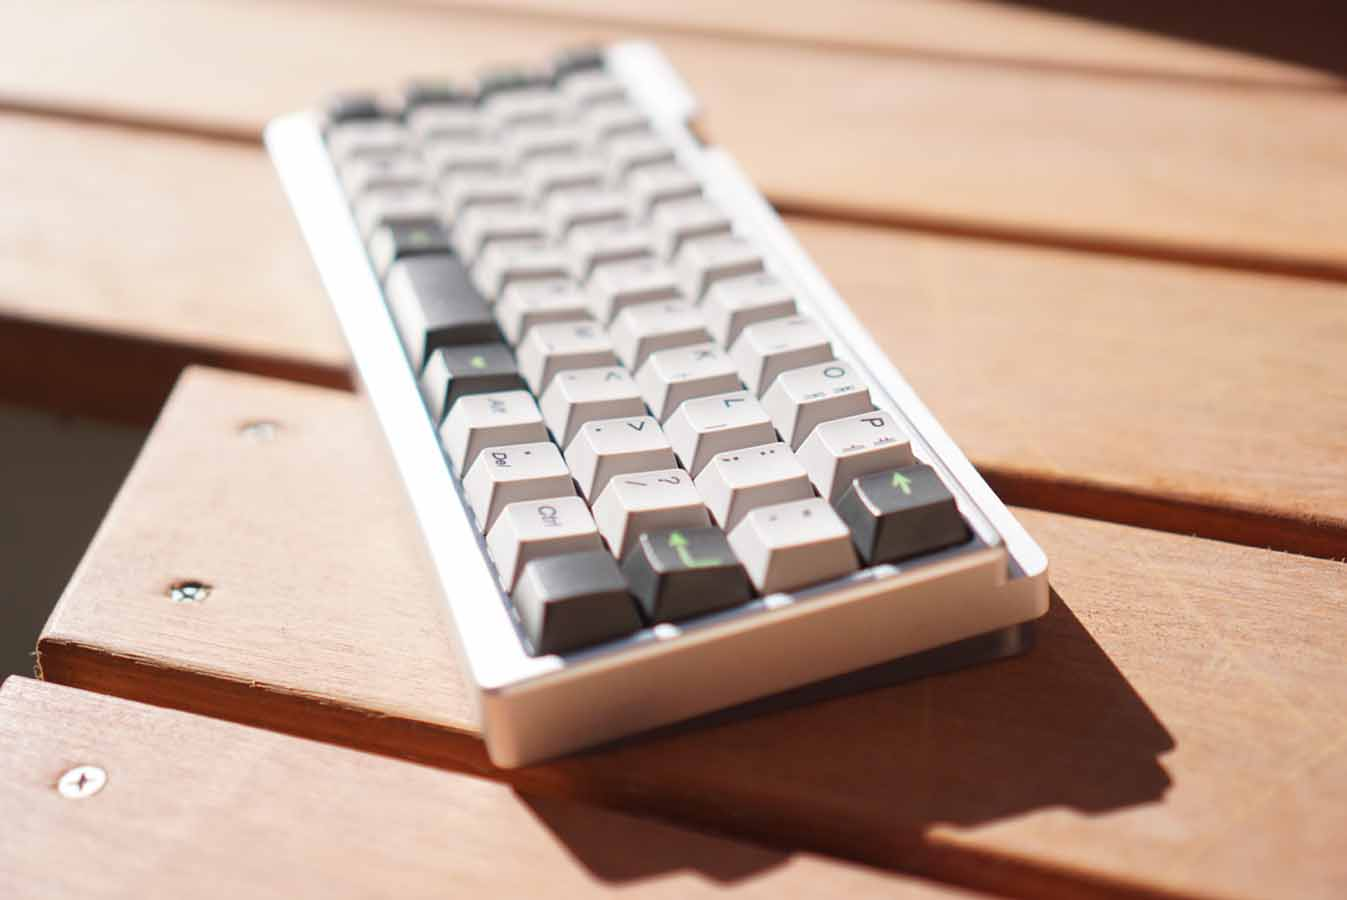 IC] UD_40 (40% Ortholinear keyboard) - Interest checks